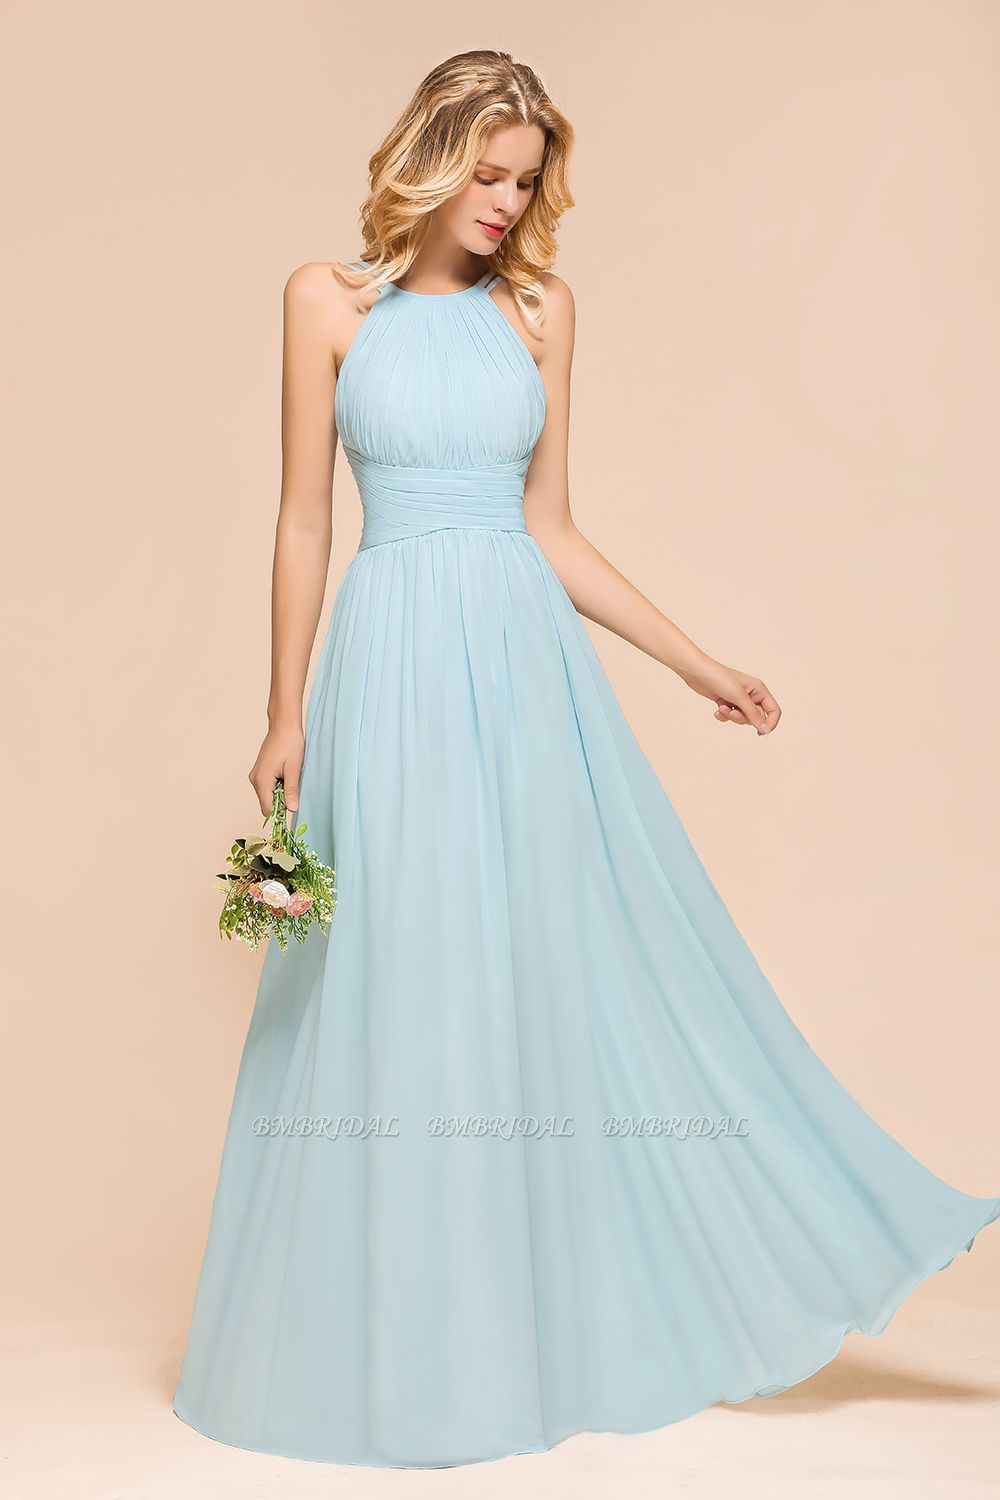 BMbridal Gorgeous Halter Ruffle Sky Blue Affordable Bridesmaid Dress